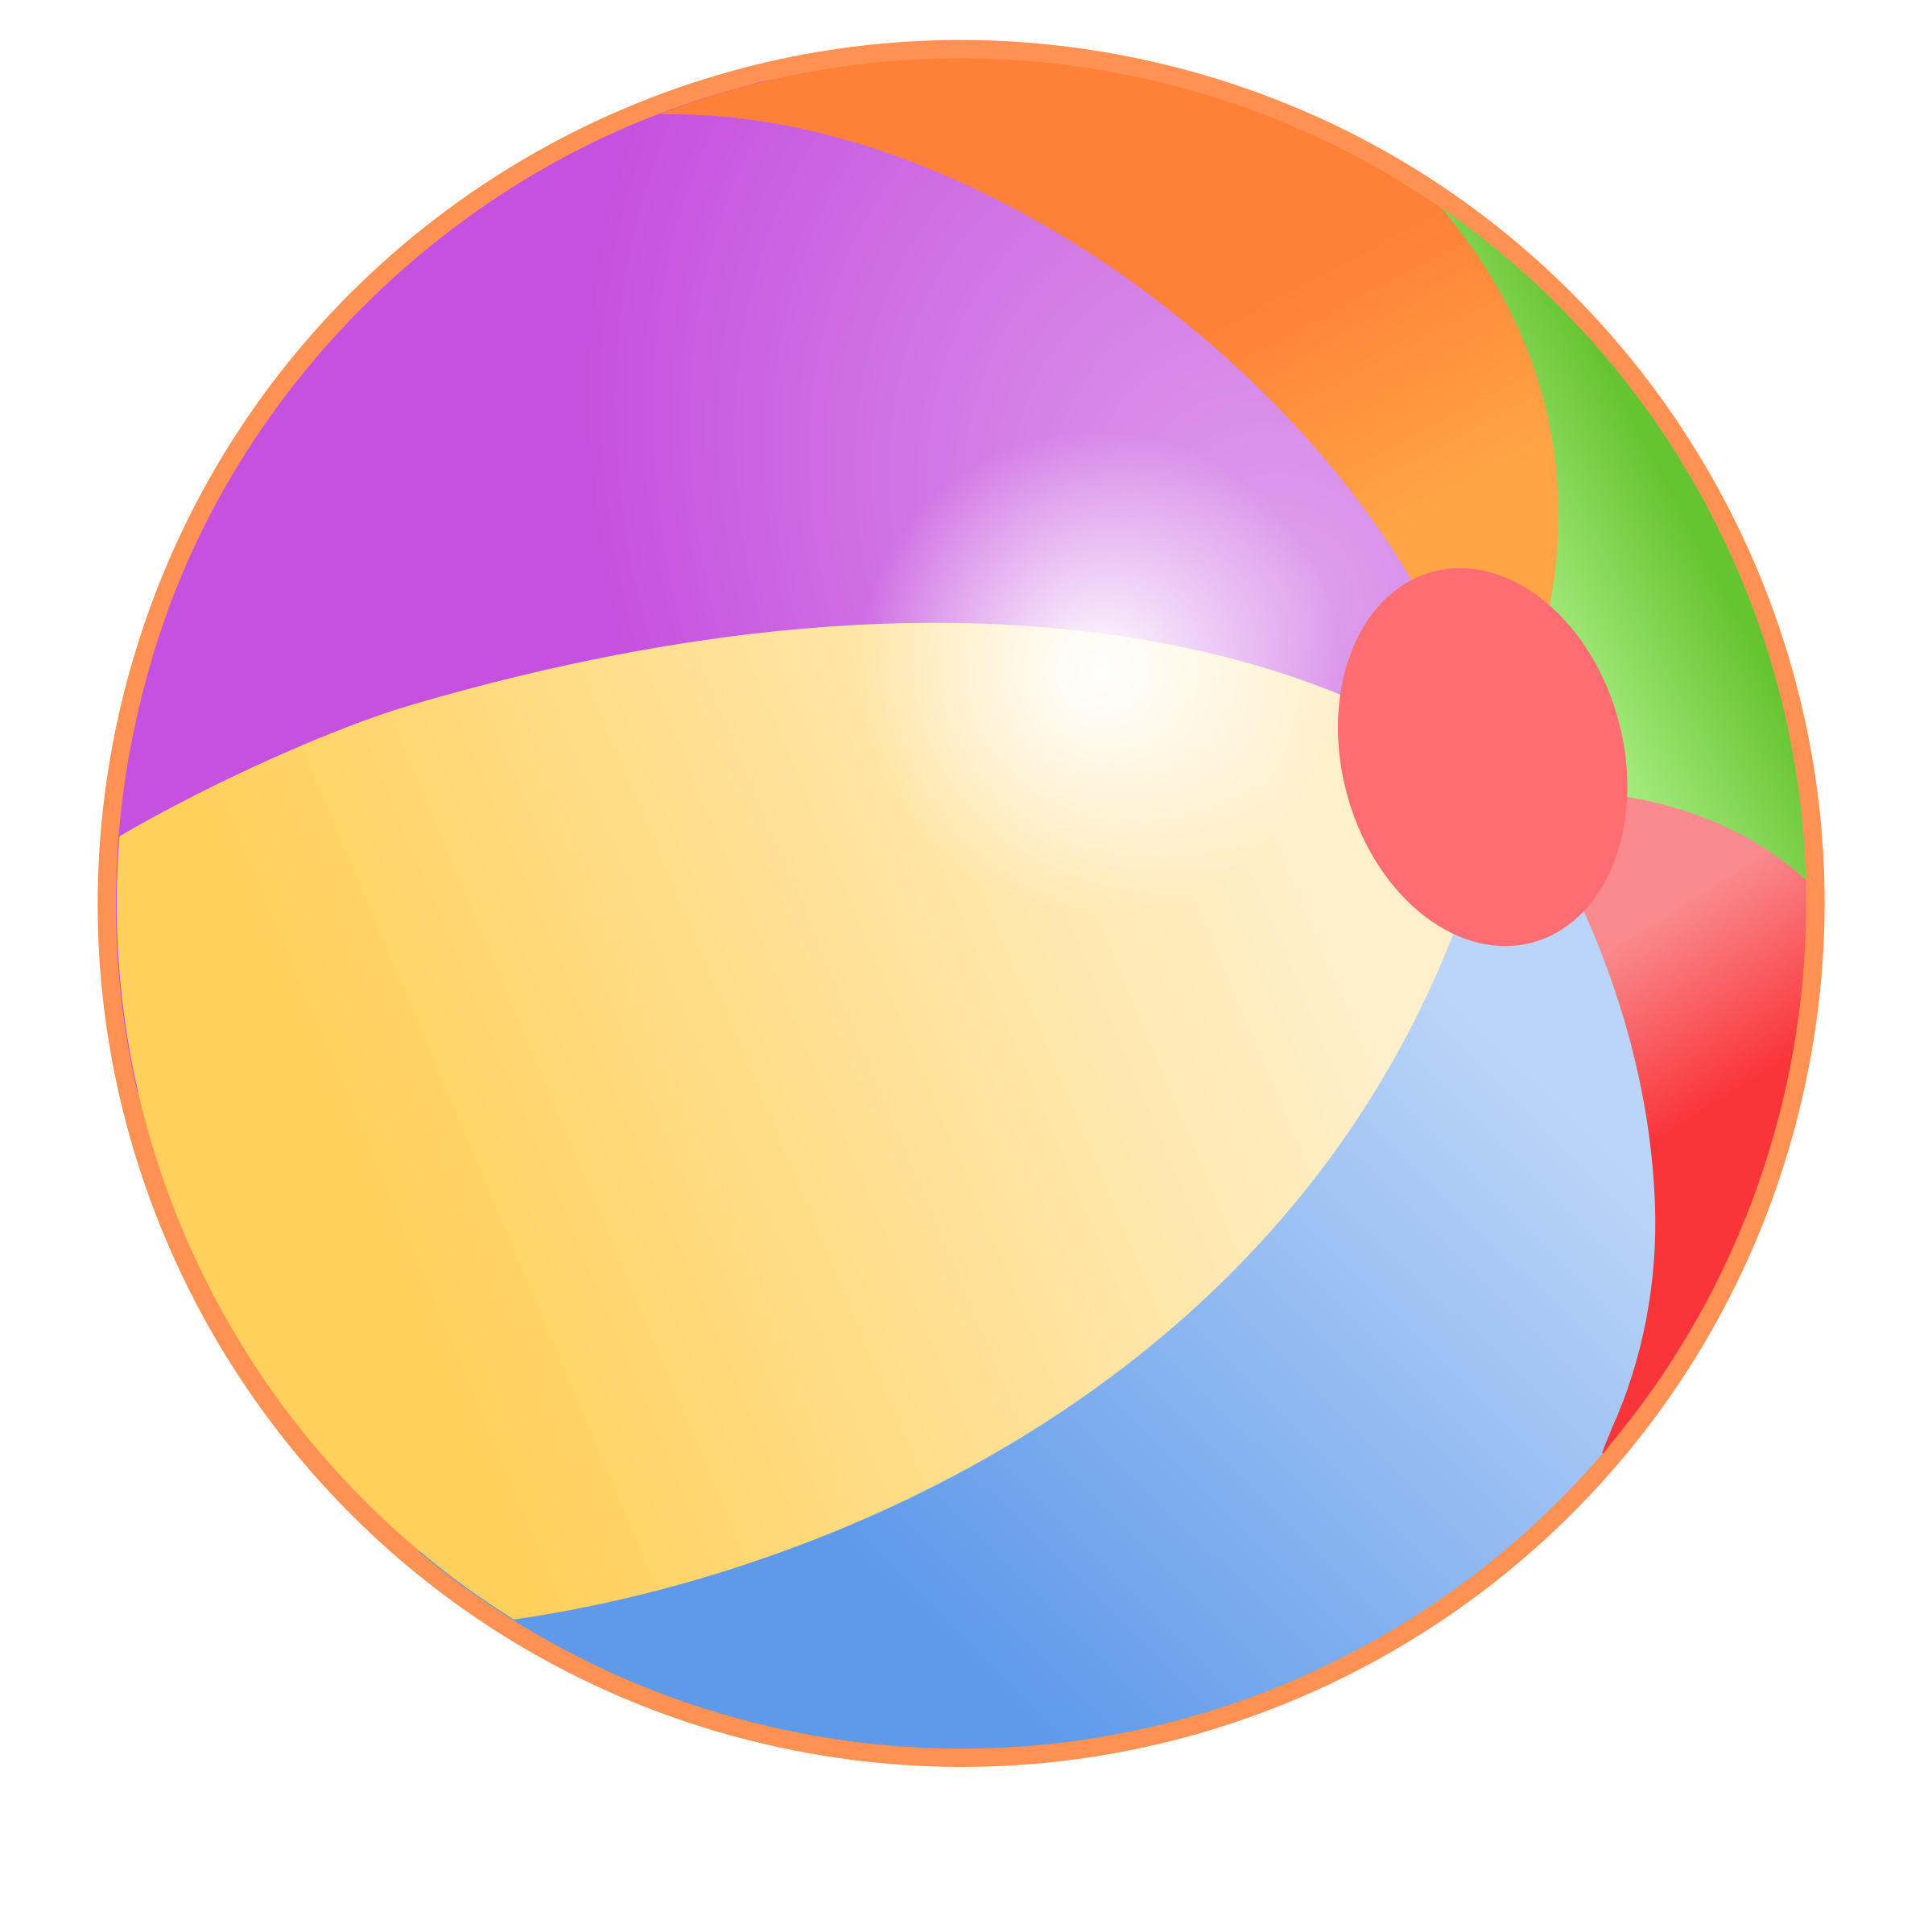 Download Beach Ball Png Picture HQ PNG Image.